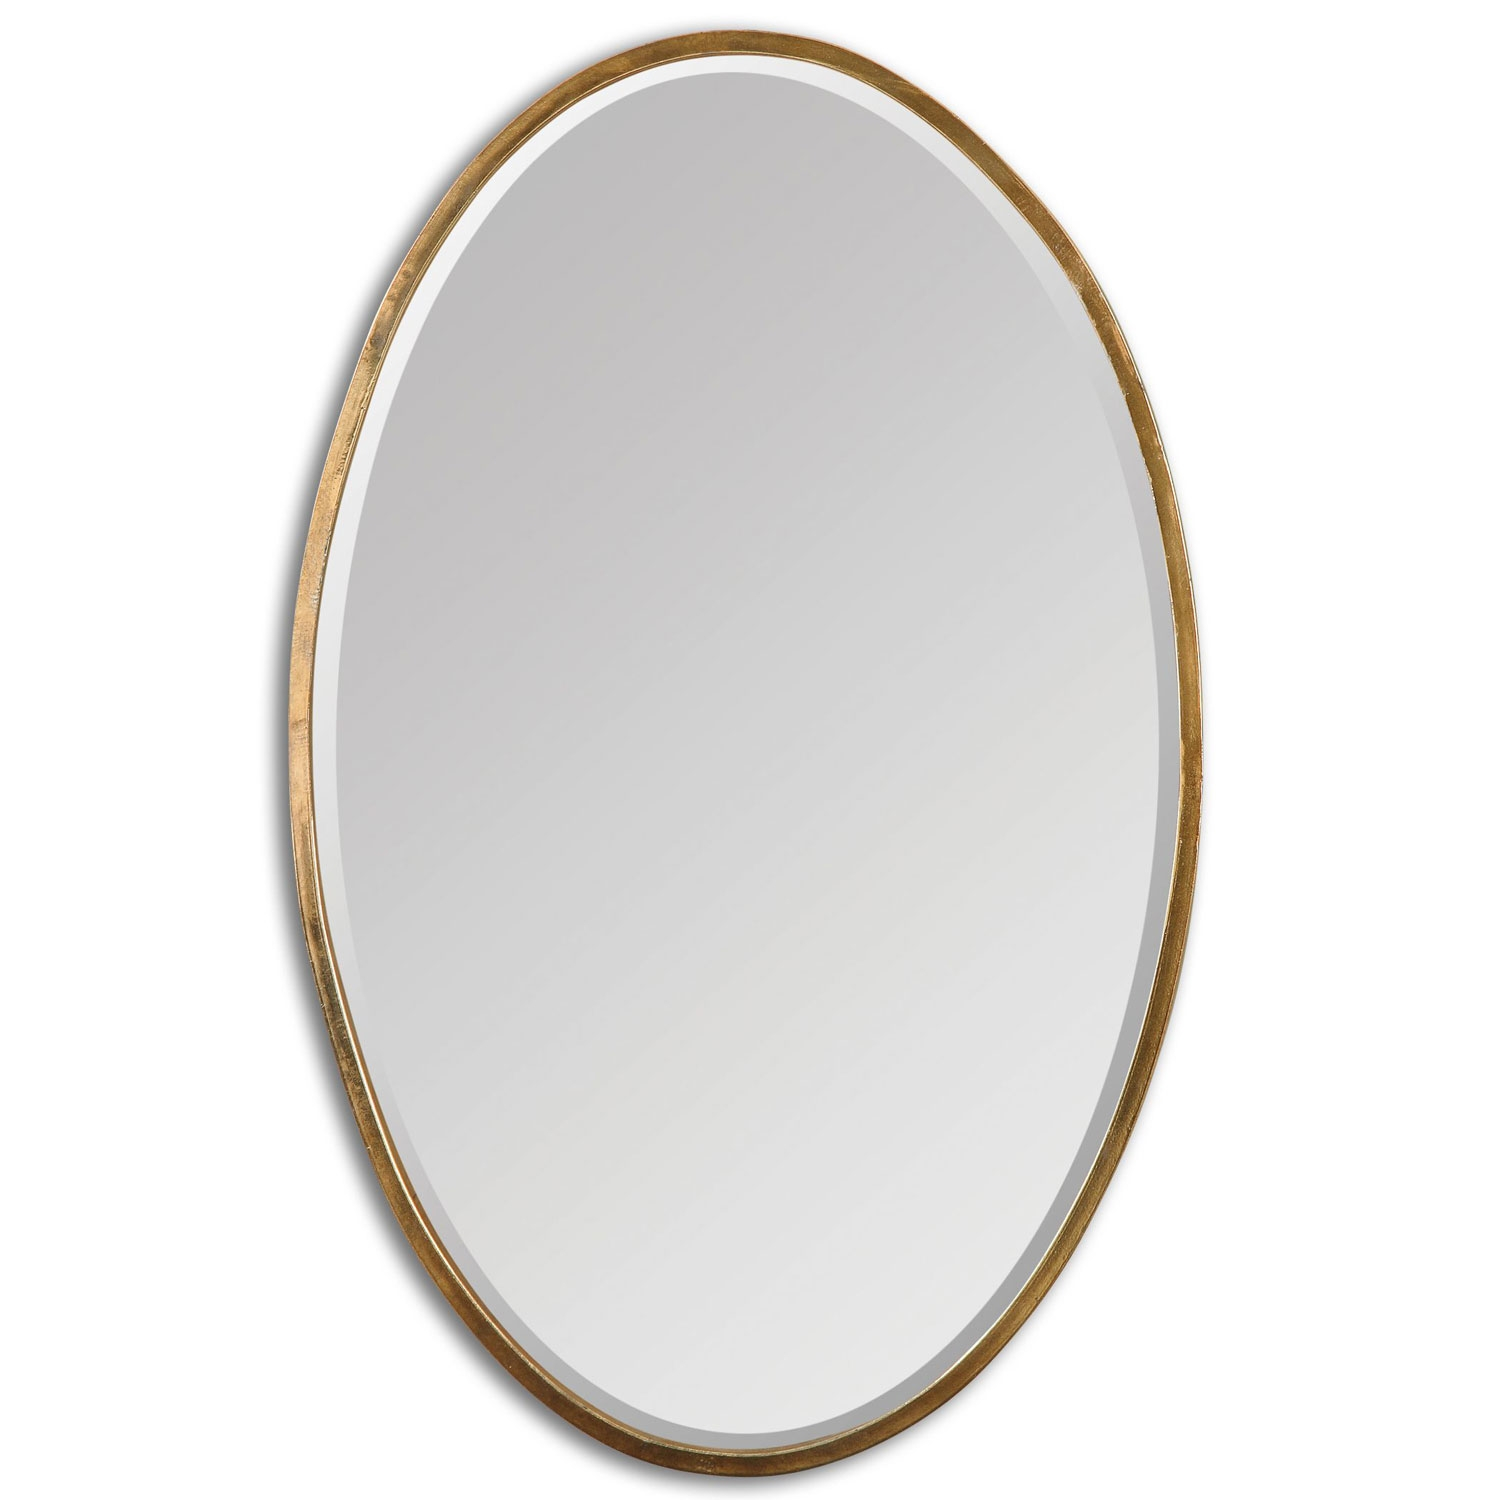 Oval Wall Mirrors 270 Kitchen Bathroom Frameless Vanity Options Intended For Long Oval Mirror (View 5 of 15)